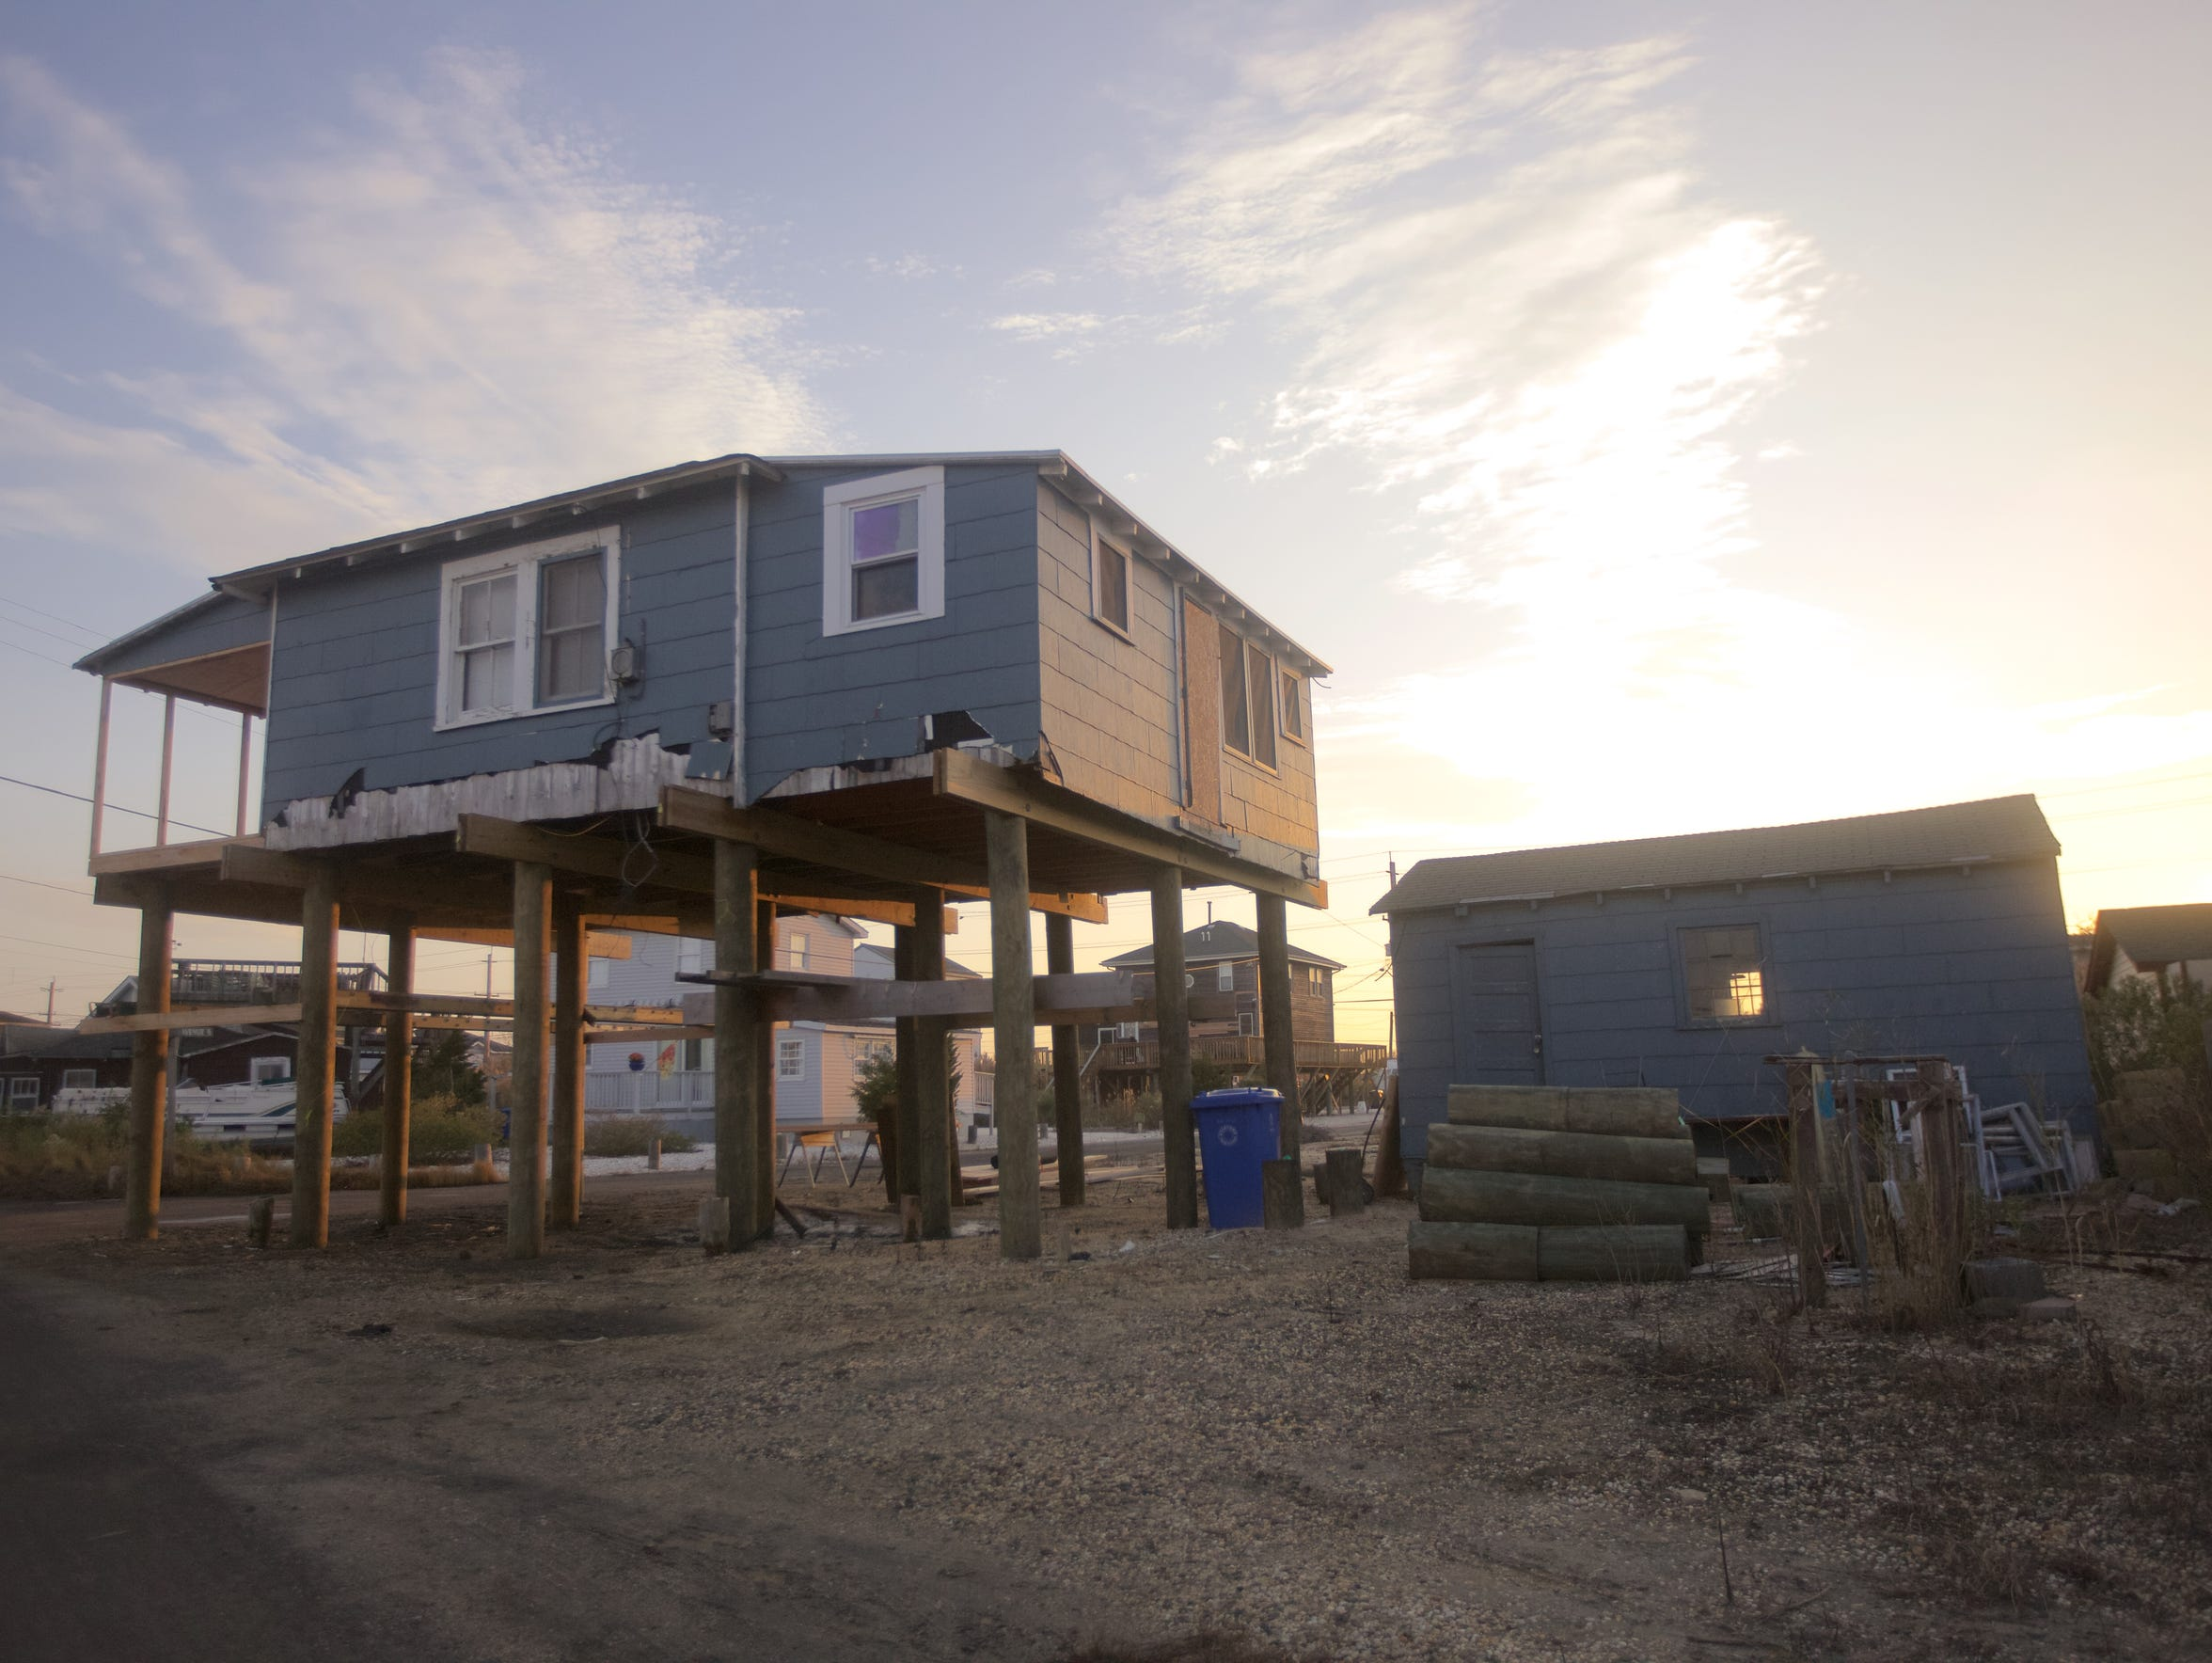 There are still homes in the area recovering from Superstorm